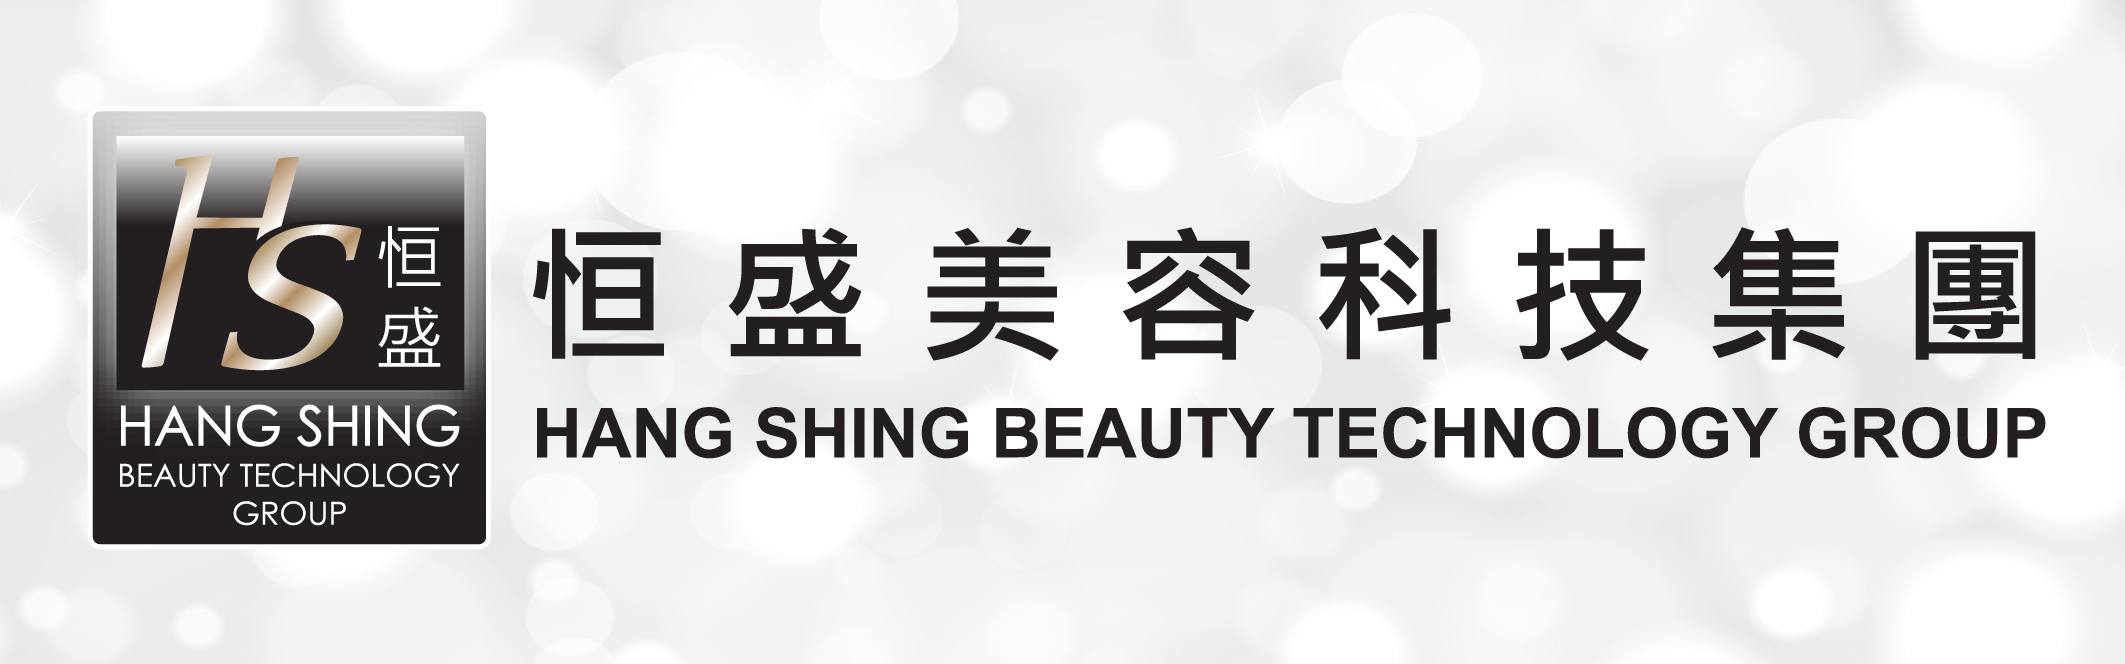 Hang Shing Beauty Technology Group 恒盛美容科技集團